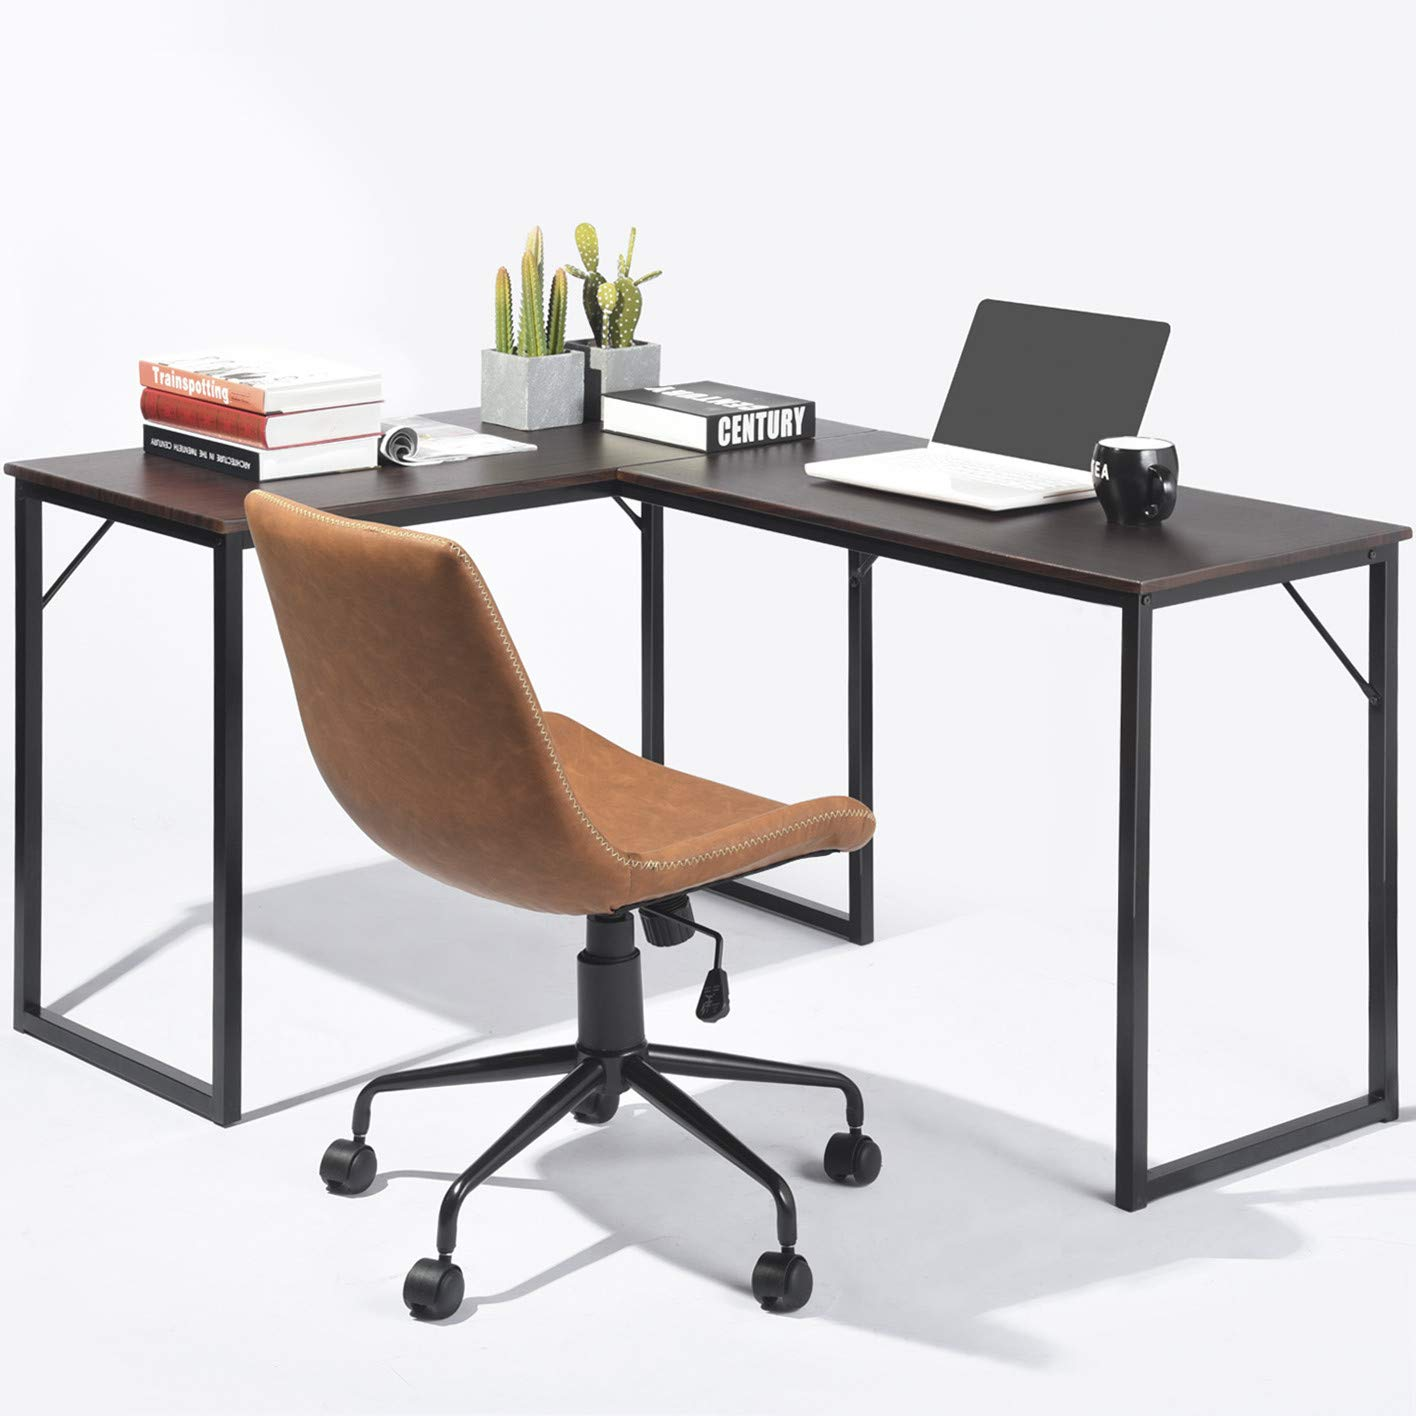 GreenForest L Shaped Corner Desk Home Office Computer PC Laptop Table Workstation with Metal Legs Easy Assembly,Espresso